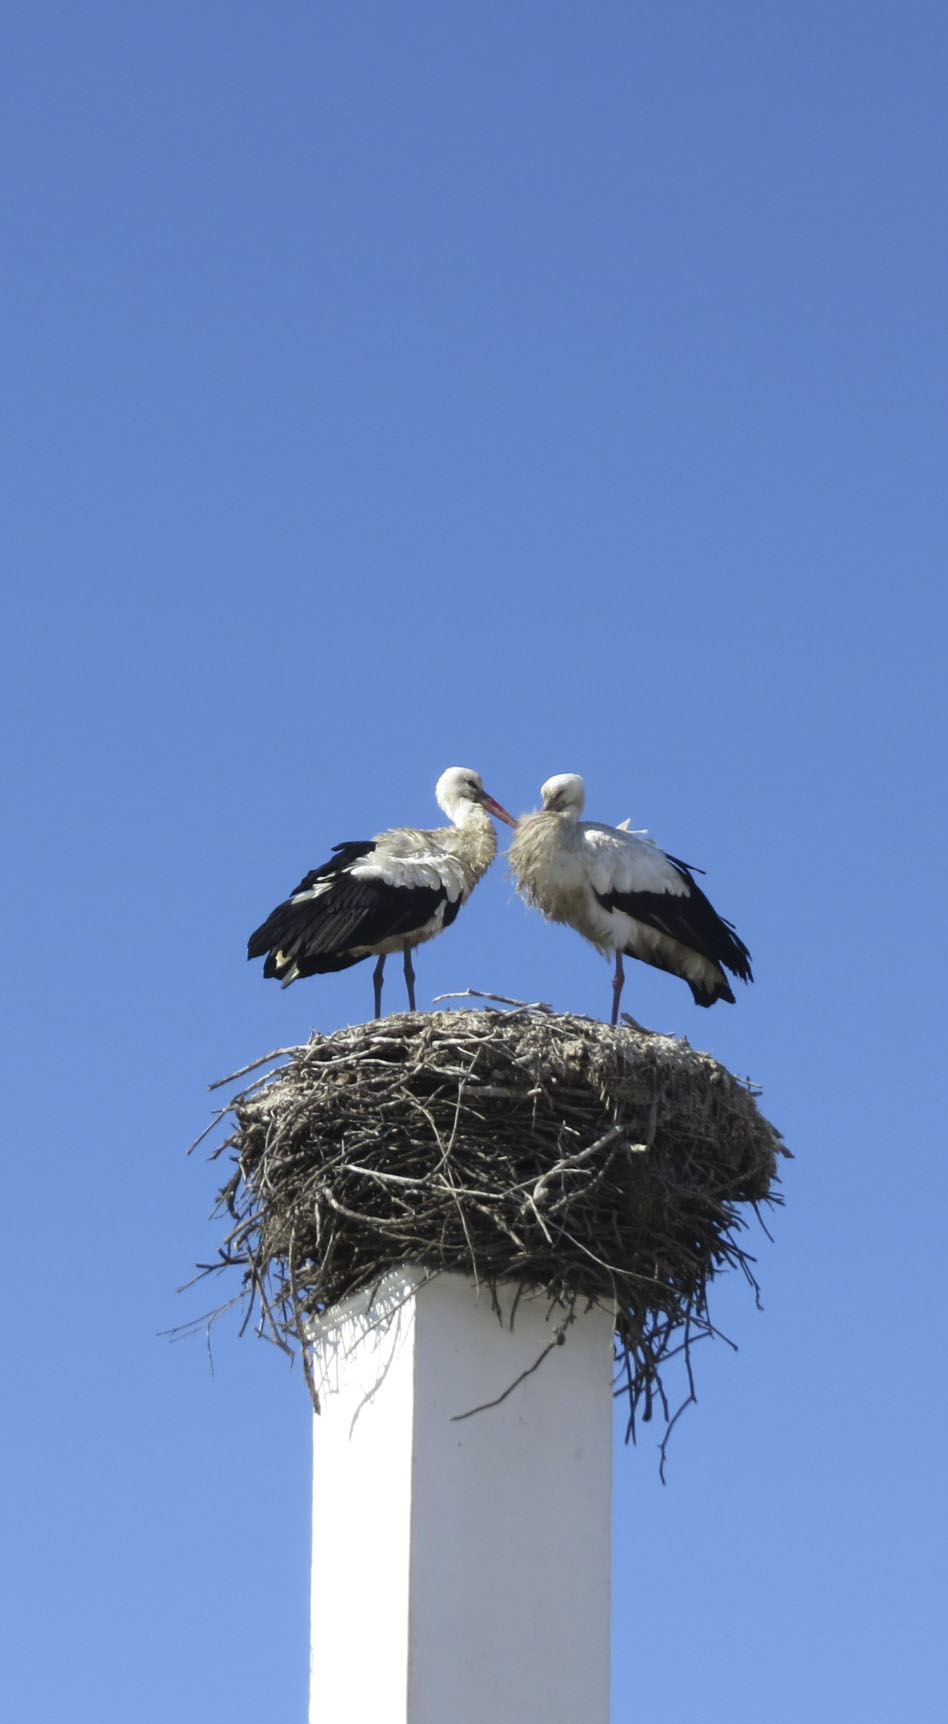 Storks in their nest